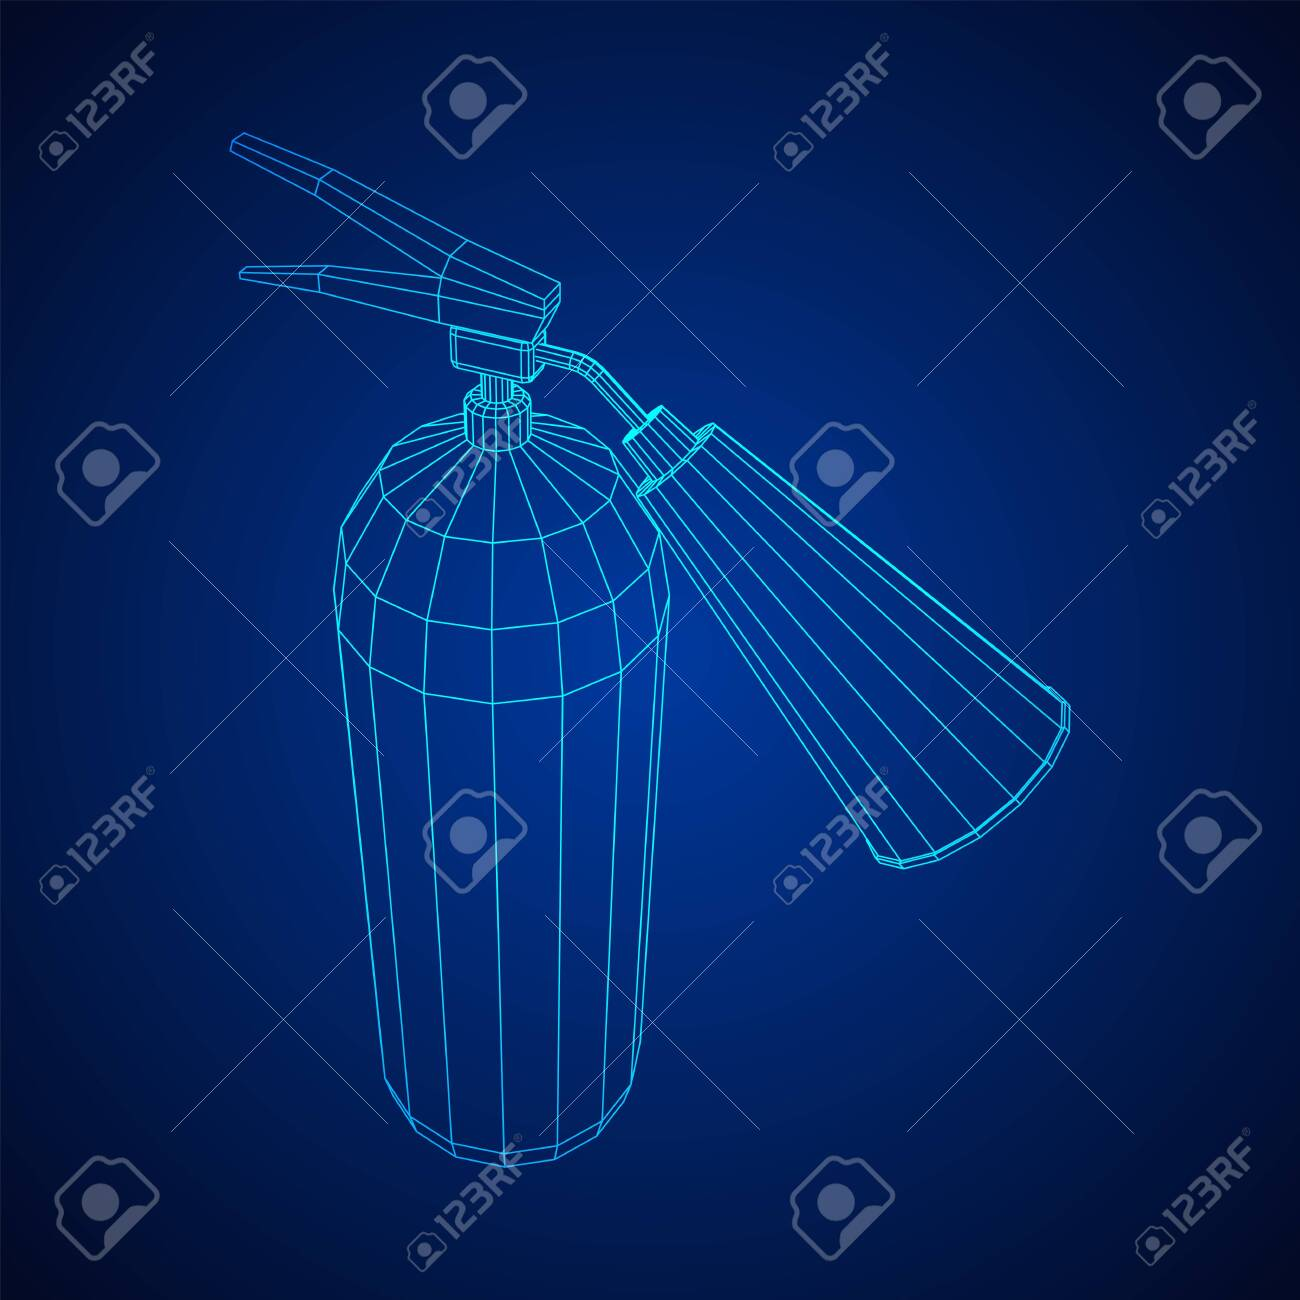 Fire extinguisher. Wireframe low poly mesh vector illustration. - 148406386